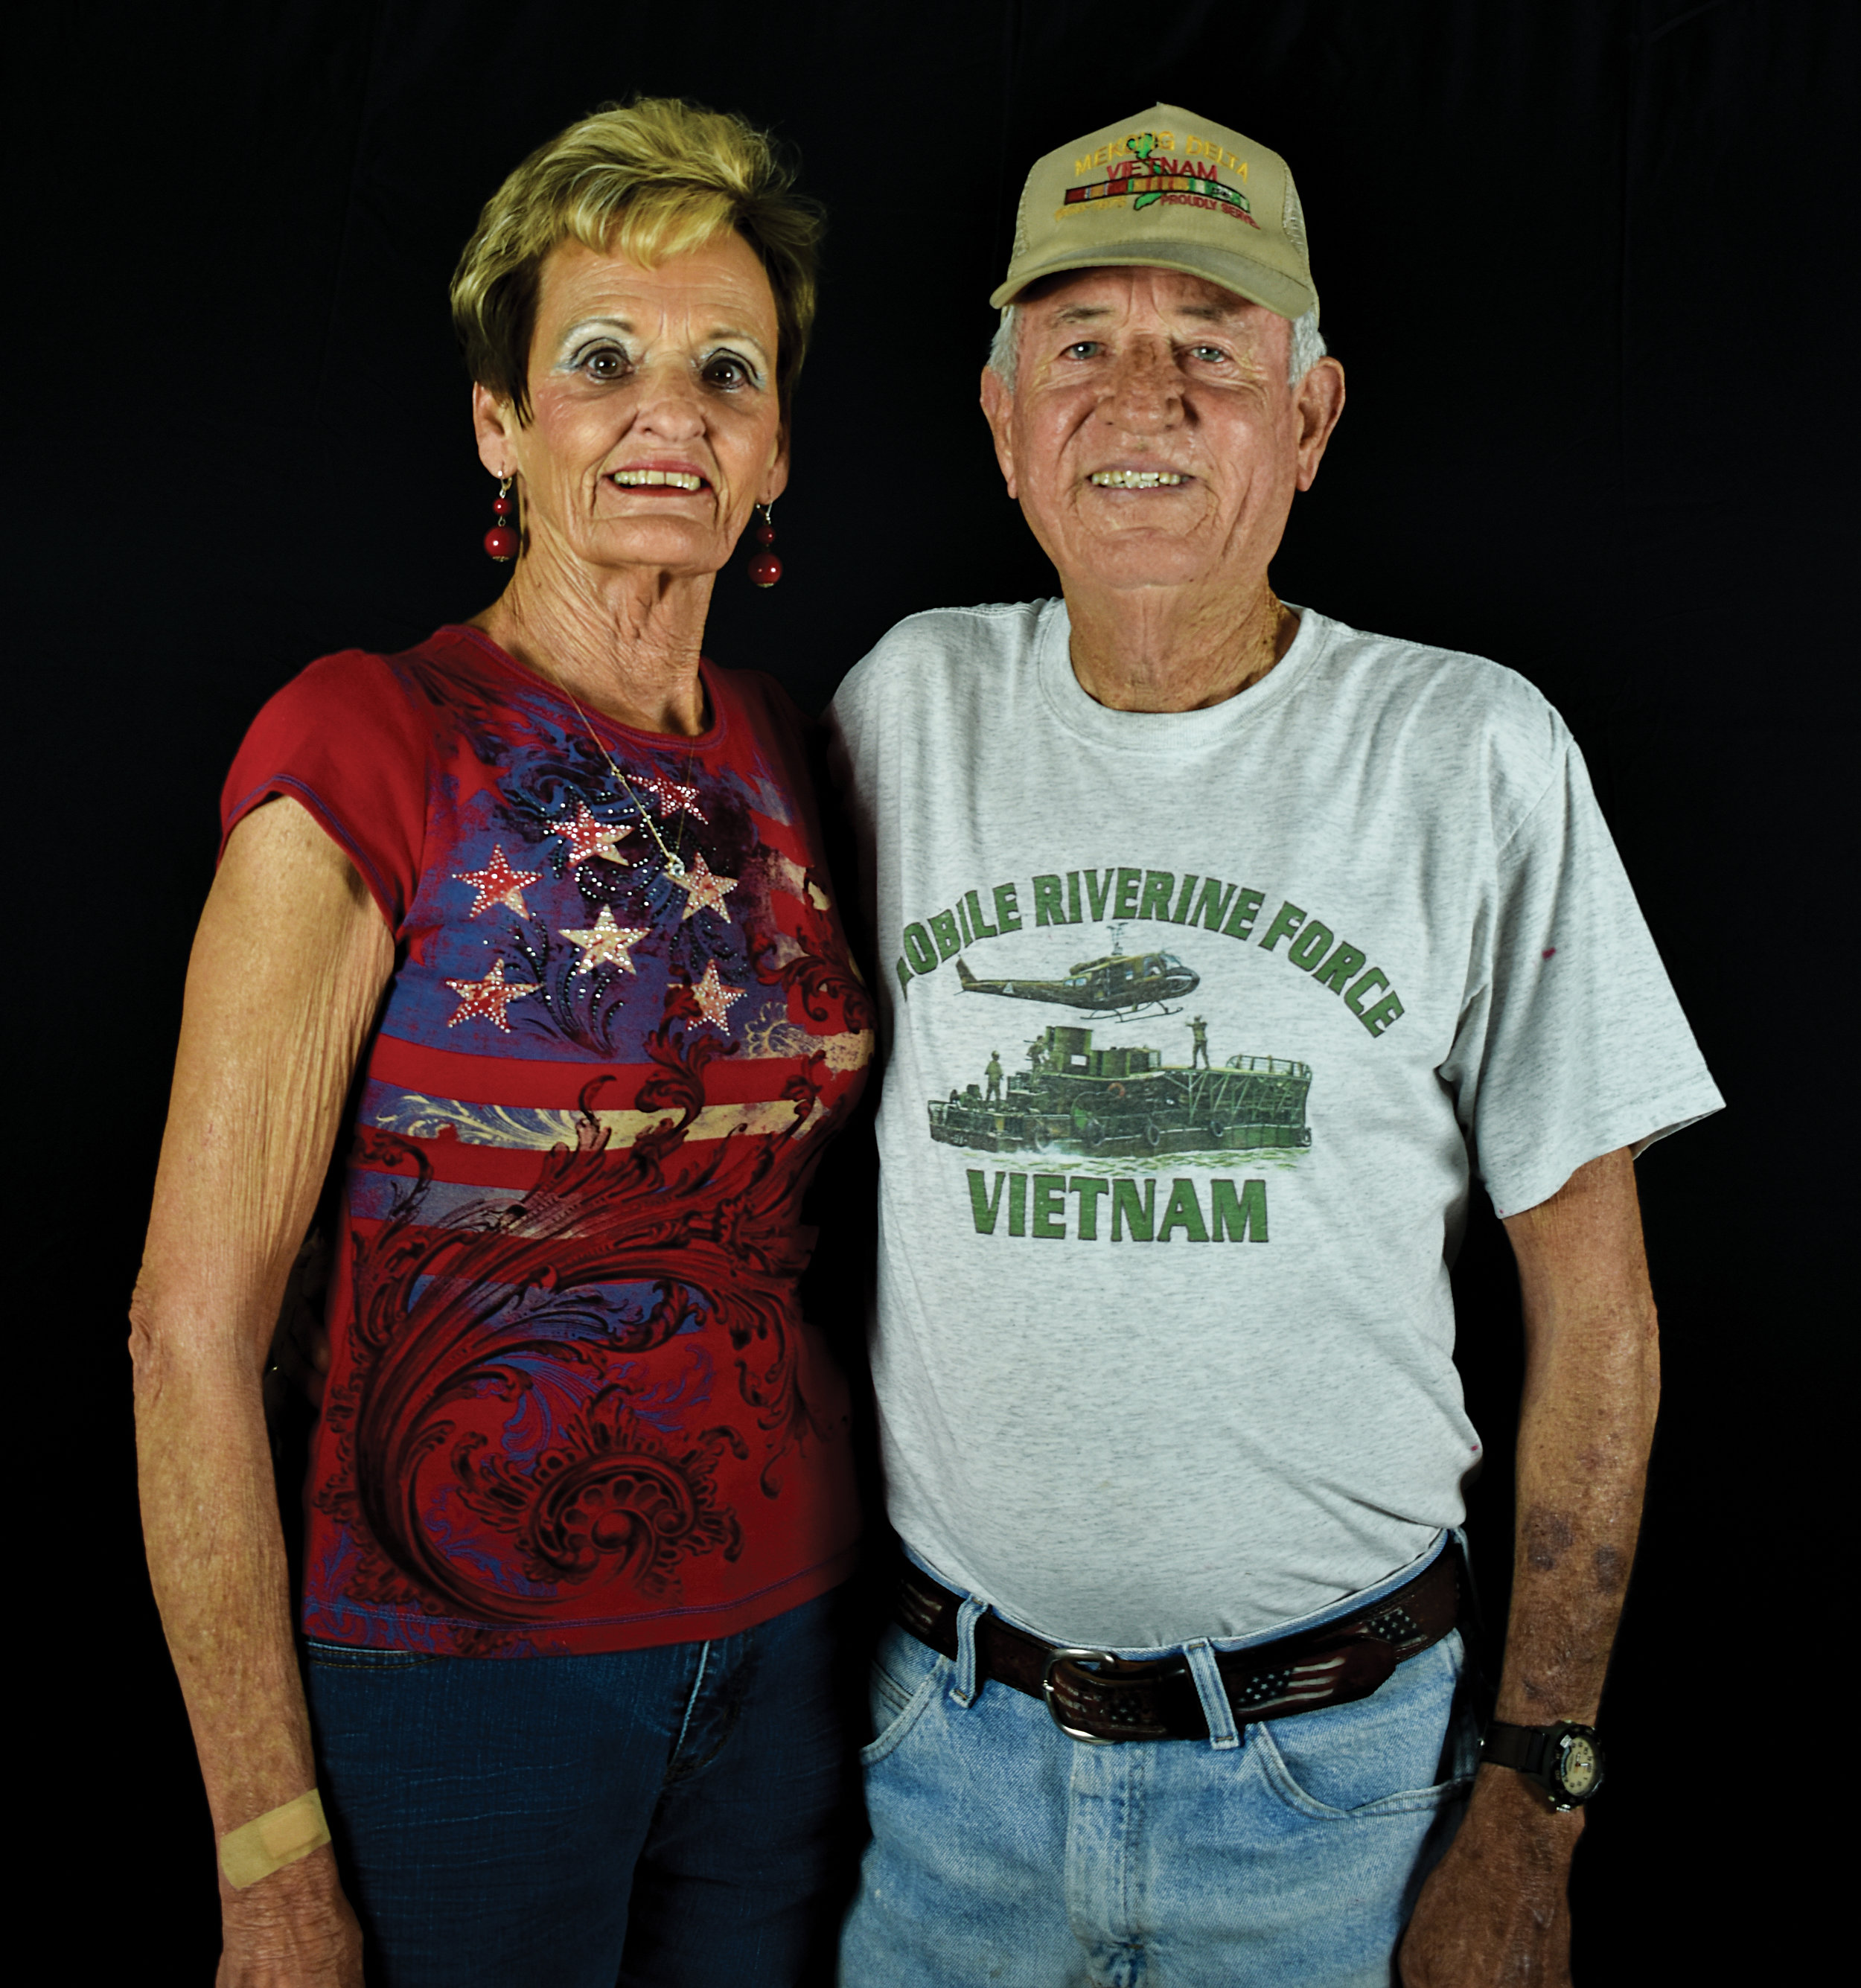 Mr. Ricky McDivitt, pictured with his lovely wife.